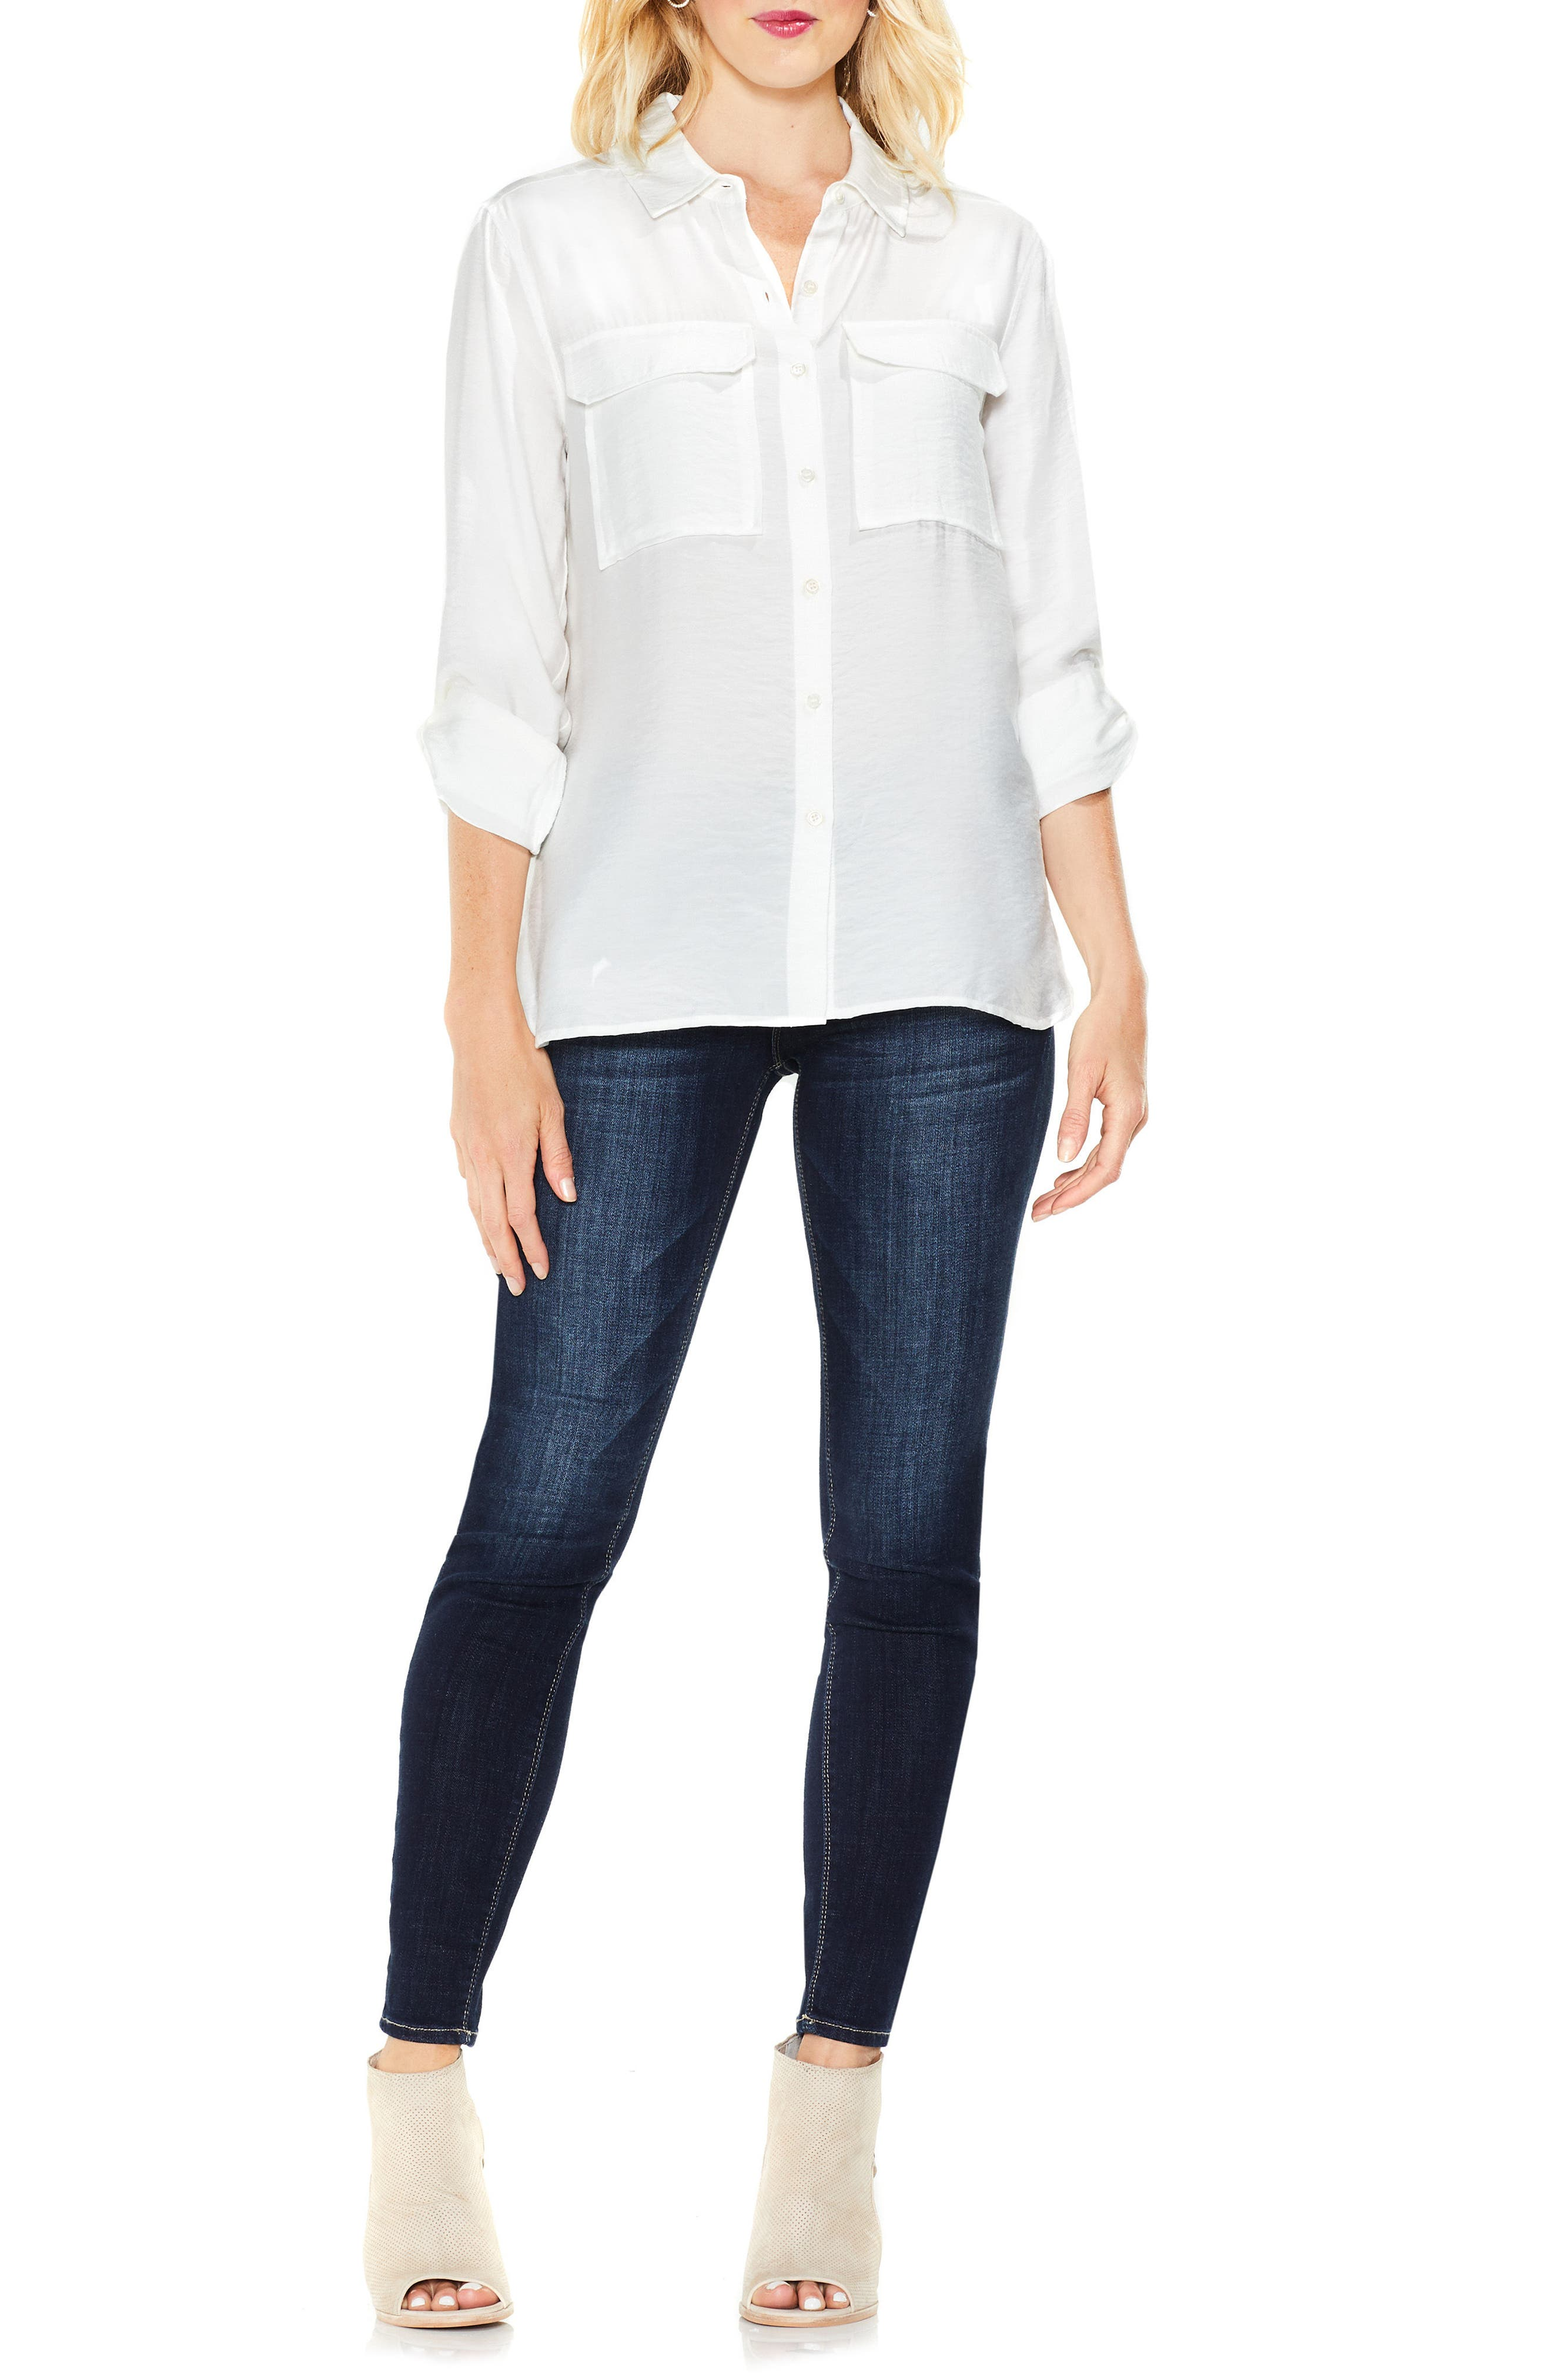 Alternate Image 2  - Two by Vince Camuto Hammered Satin Utility Shirt (Regular & Petite)